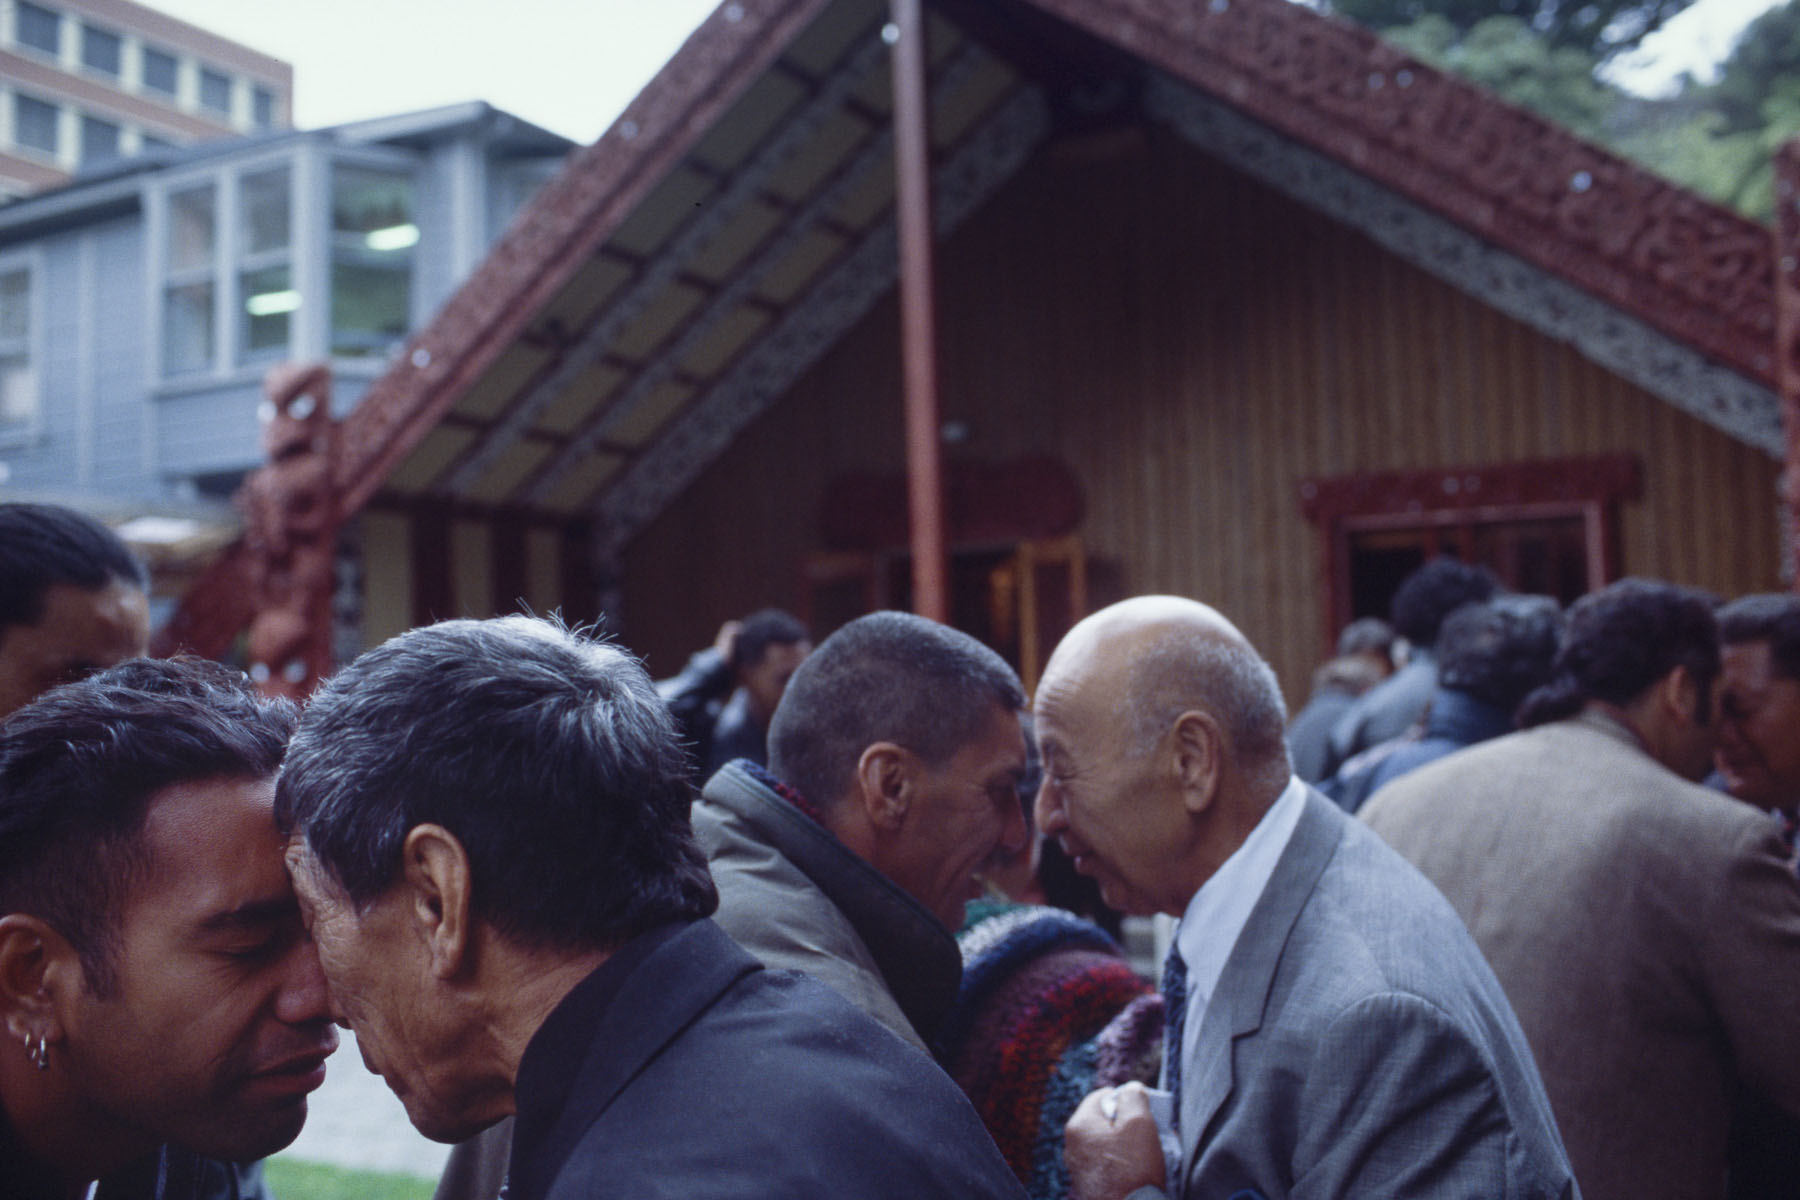 Maori men exchange a hongi, traditional Maori greeting during a powhiri, welcoming ceremony at Victoria University marae in May 2000